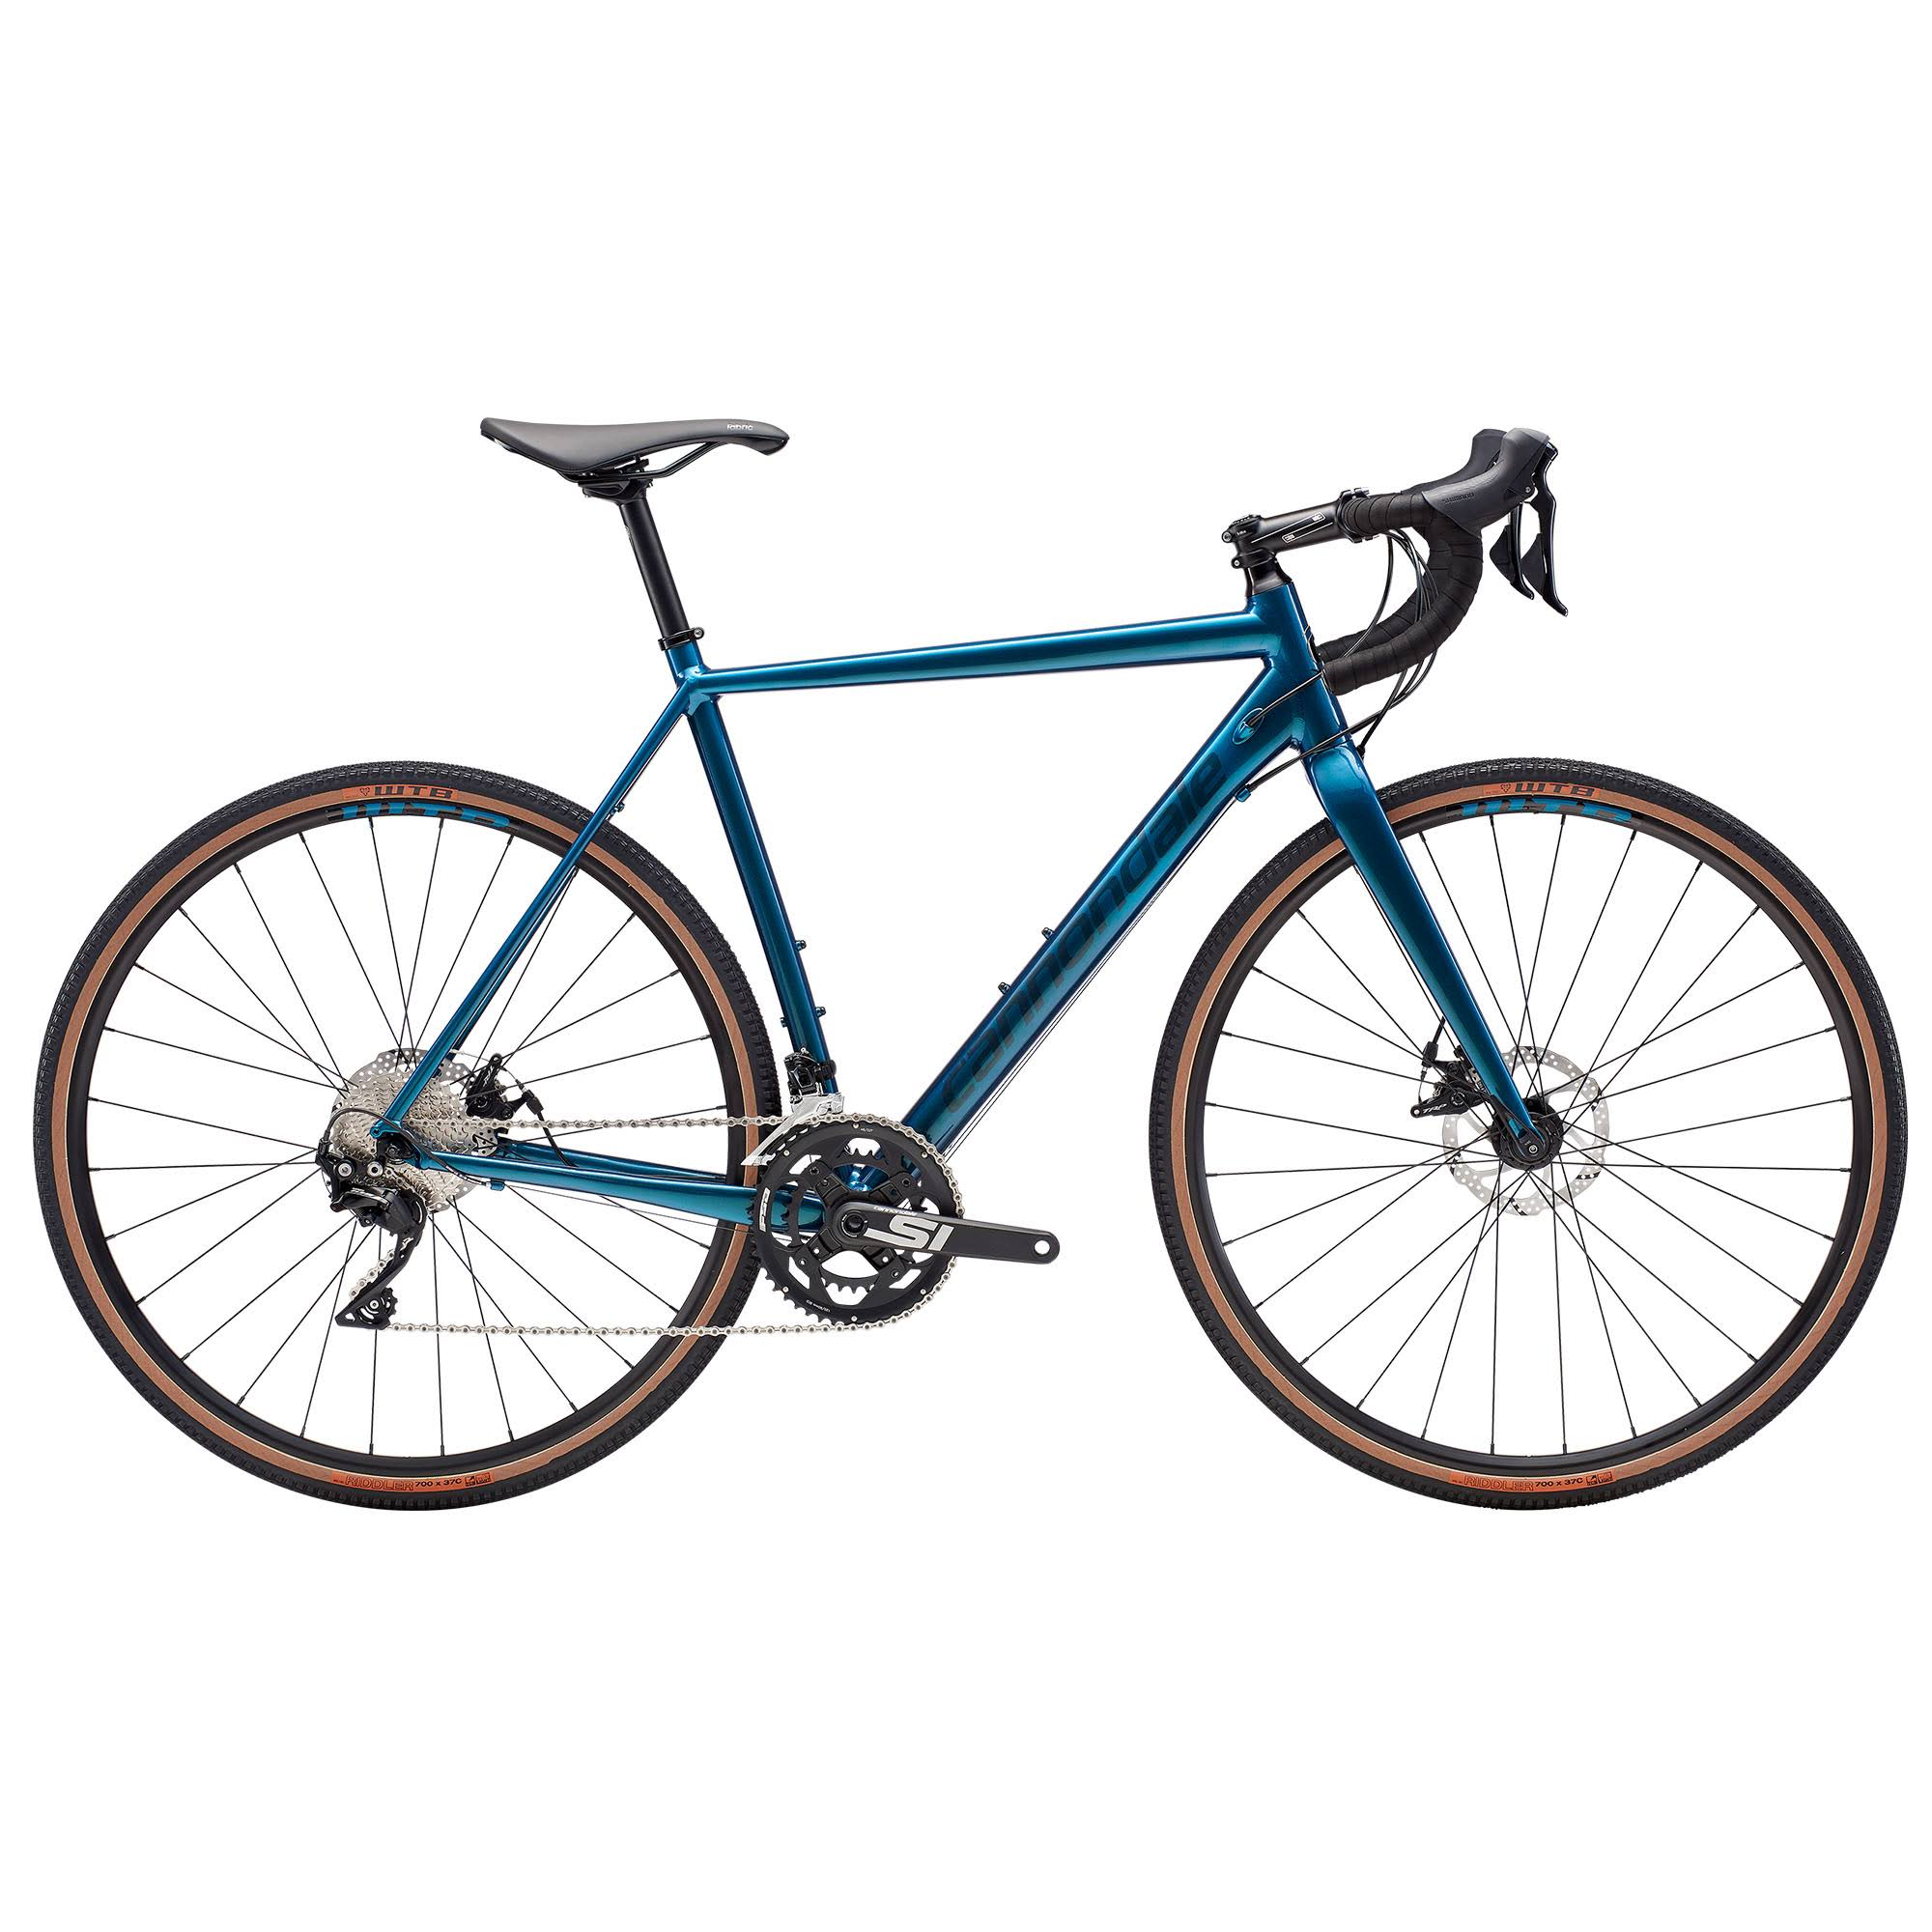 Cannondale CAADX 105 SE 2019 Cyclocross Bike - Deep Teal, 54cm